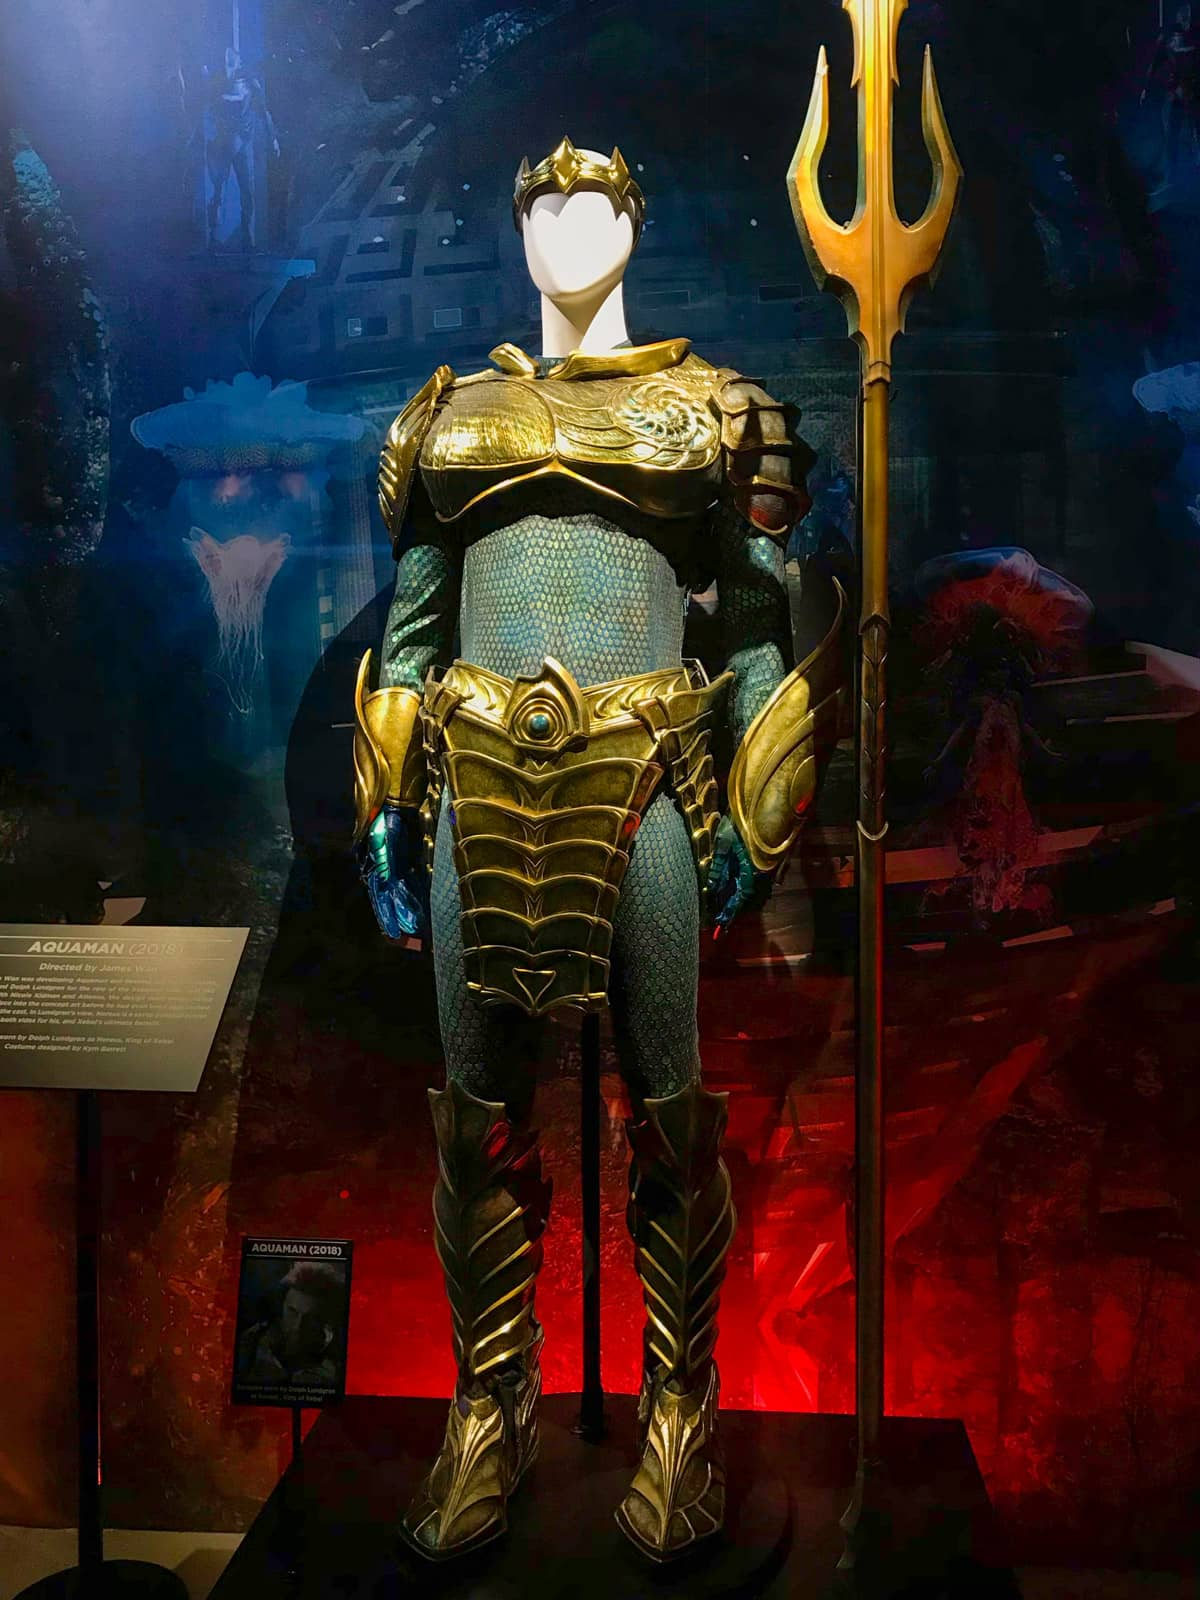 An Aquaman costume on display on a mannequin. The cost is metallic blue and gold with shiny detail.  His trident stands next to him.